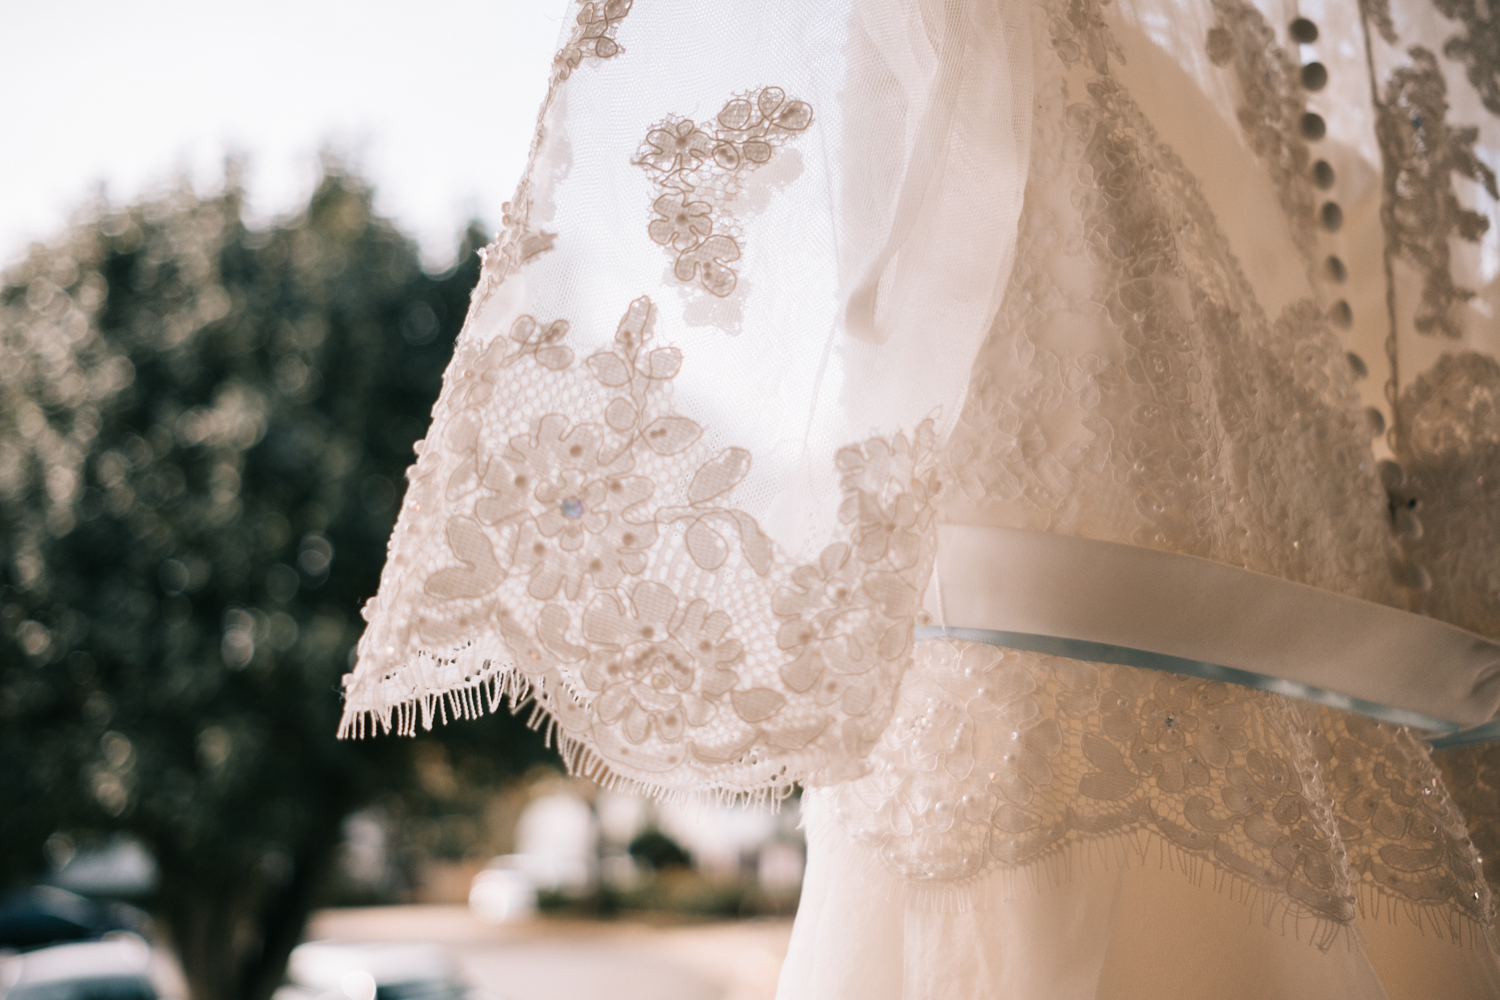 hanging wedding dress detail